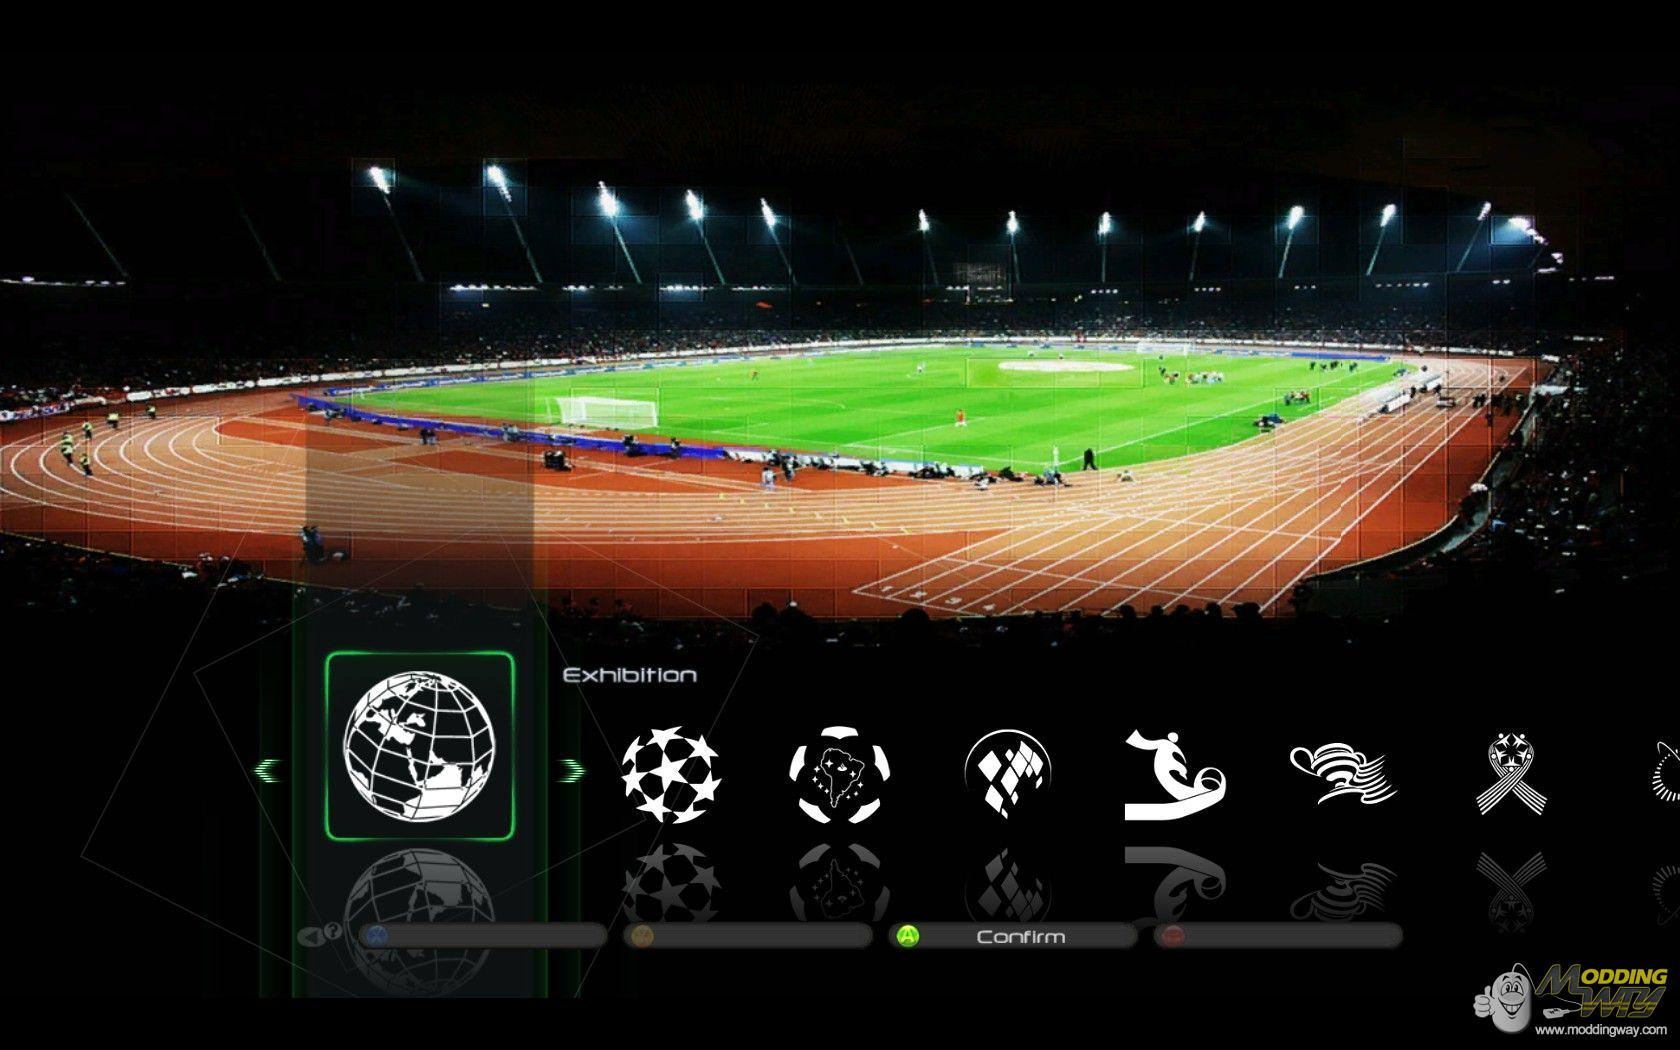 Matrix Editing Project PES 2011 Released - Pro Evolution